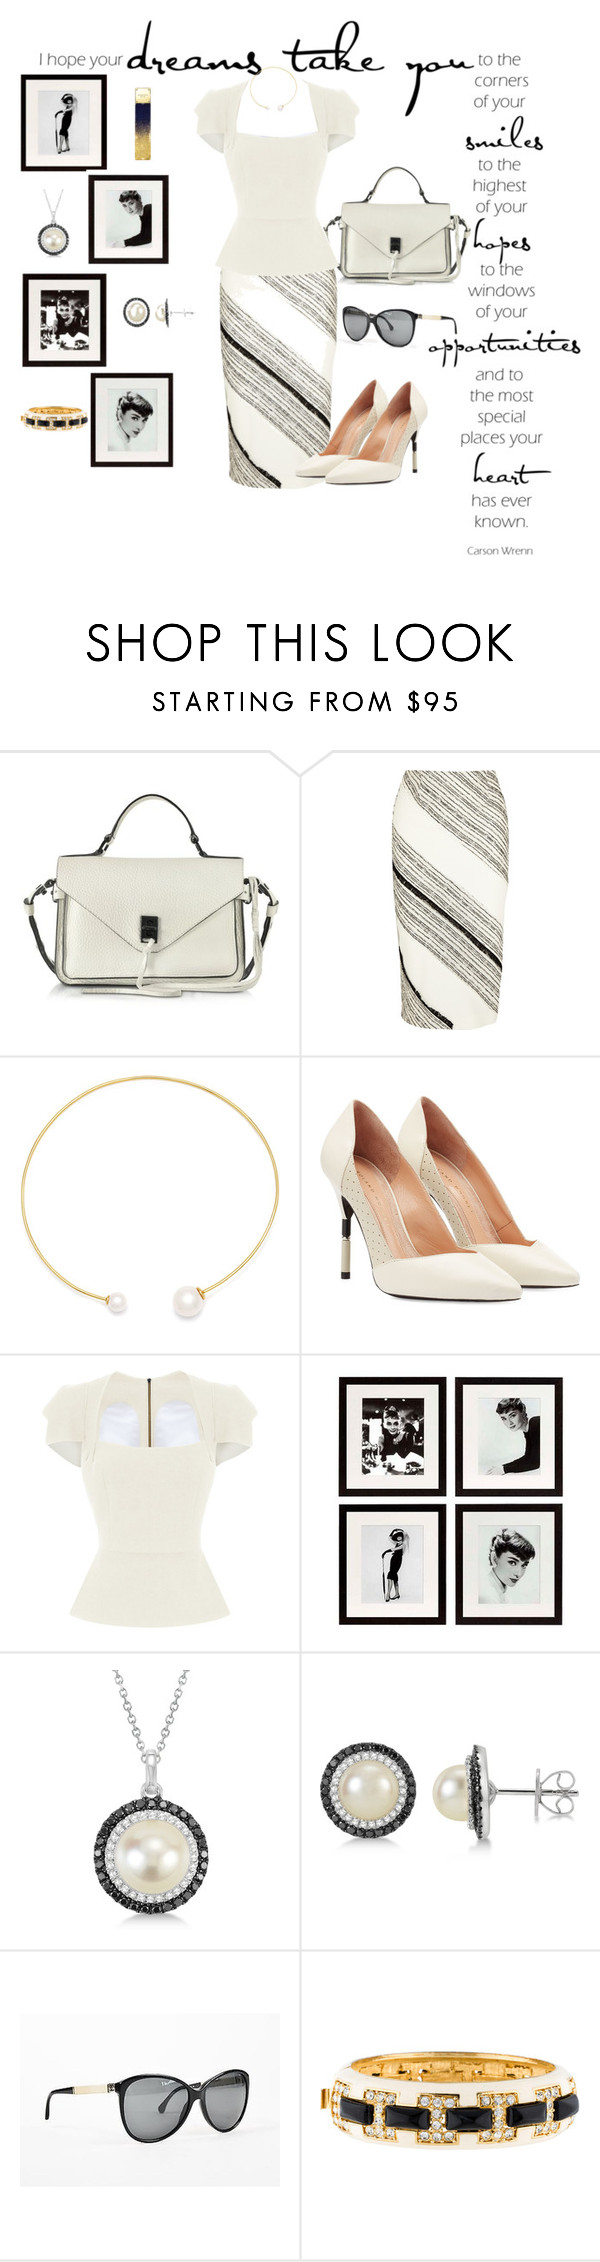 """dreams take you"" by mikaela-foreman ❤ liked on Polyvore featuring Rebecca Minkoff, Roland Mouret, Fallon, Eichholtz, Allurez, Chanel, Kenneth Jay Lane and Michael Kors"